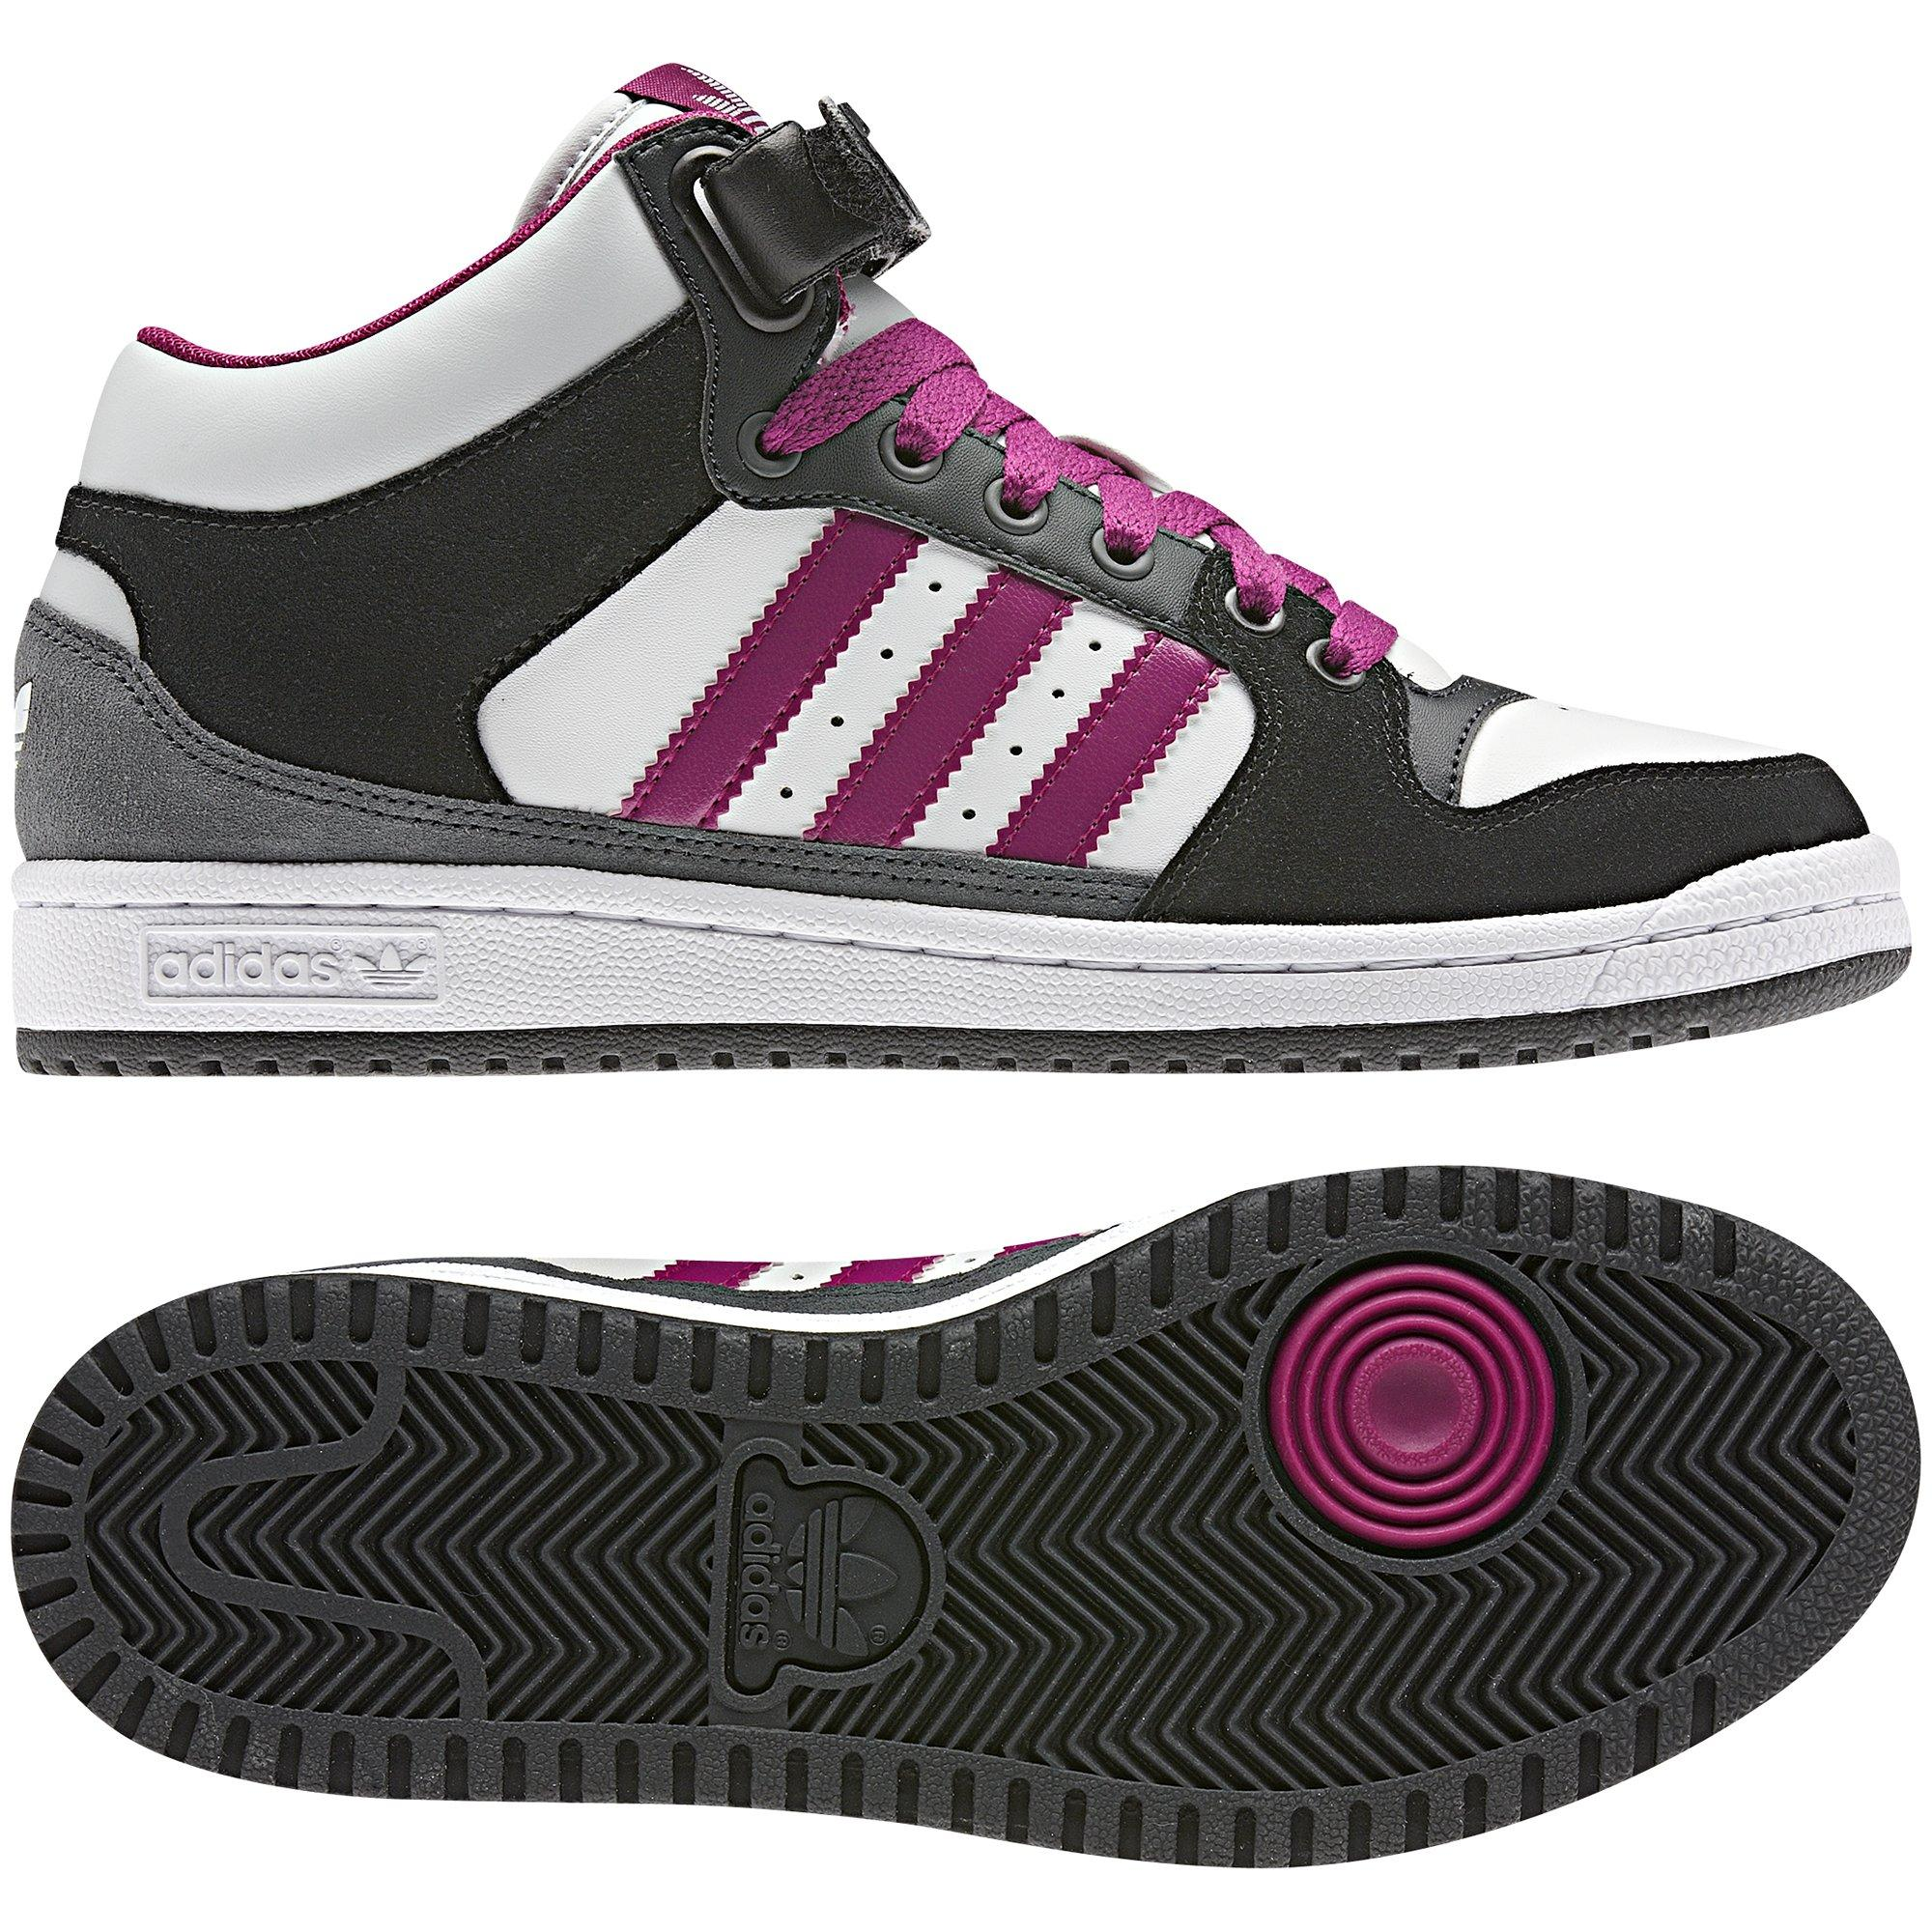 new product 460d6 e6e1a Foto adidas Decade Mid Shoes Mujer foto 1194